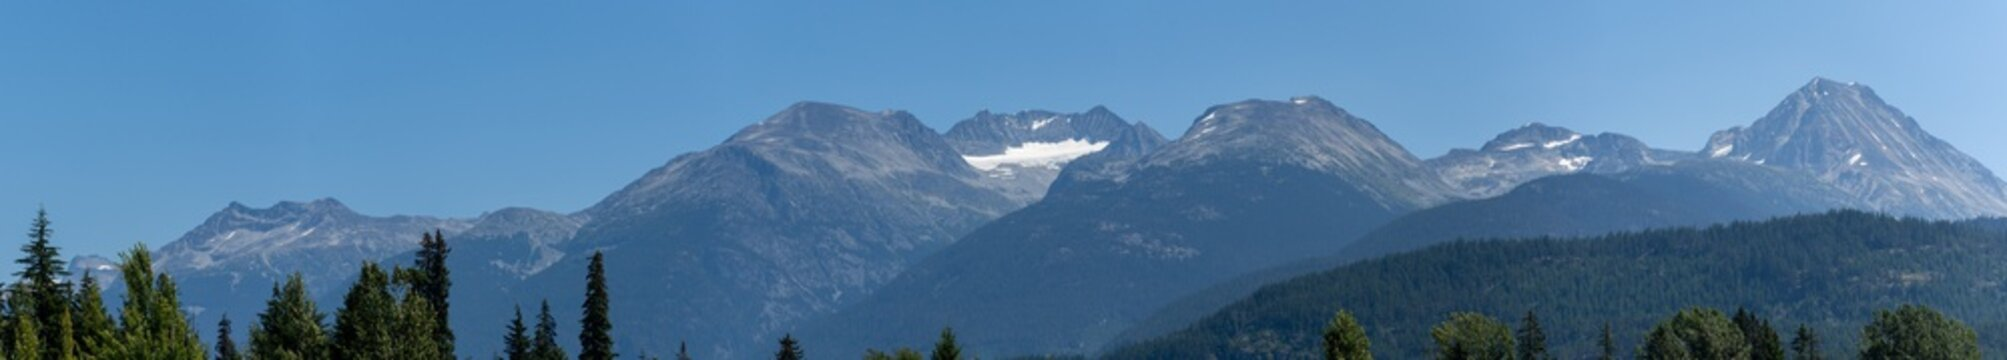 Whistler Mountain Panorama in British Columbia, Canada in the summer sun and blue sky looking at mountain range